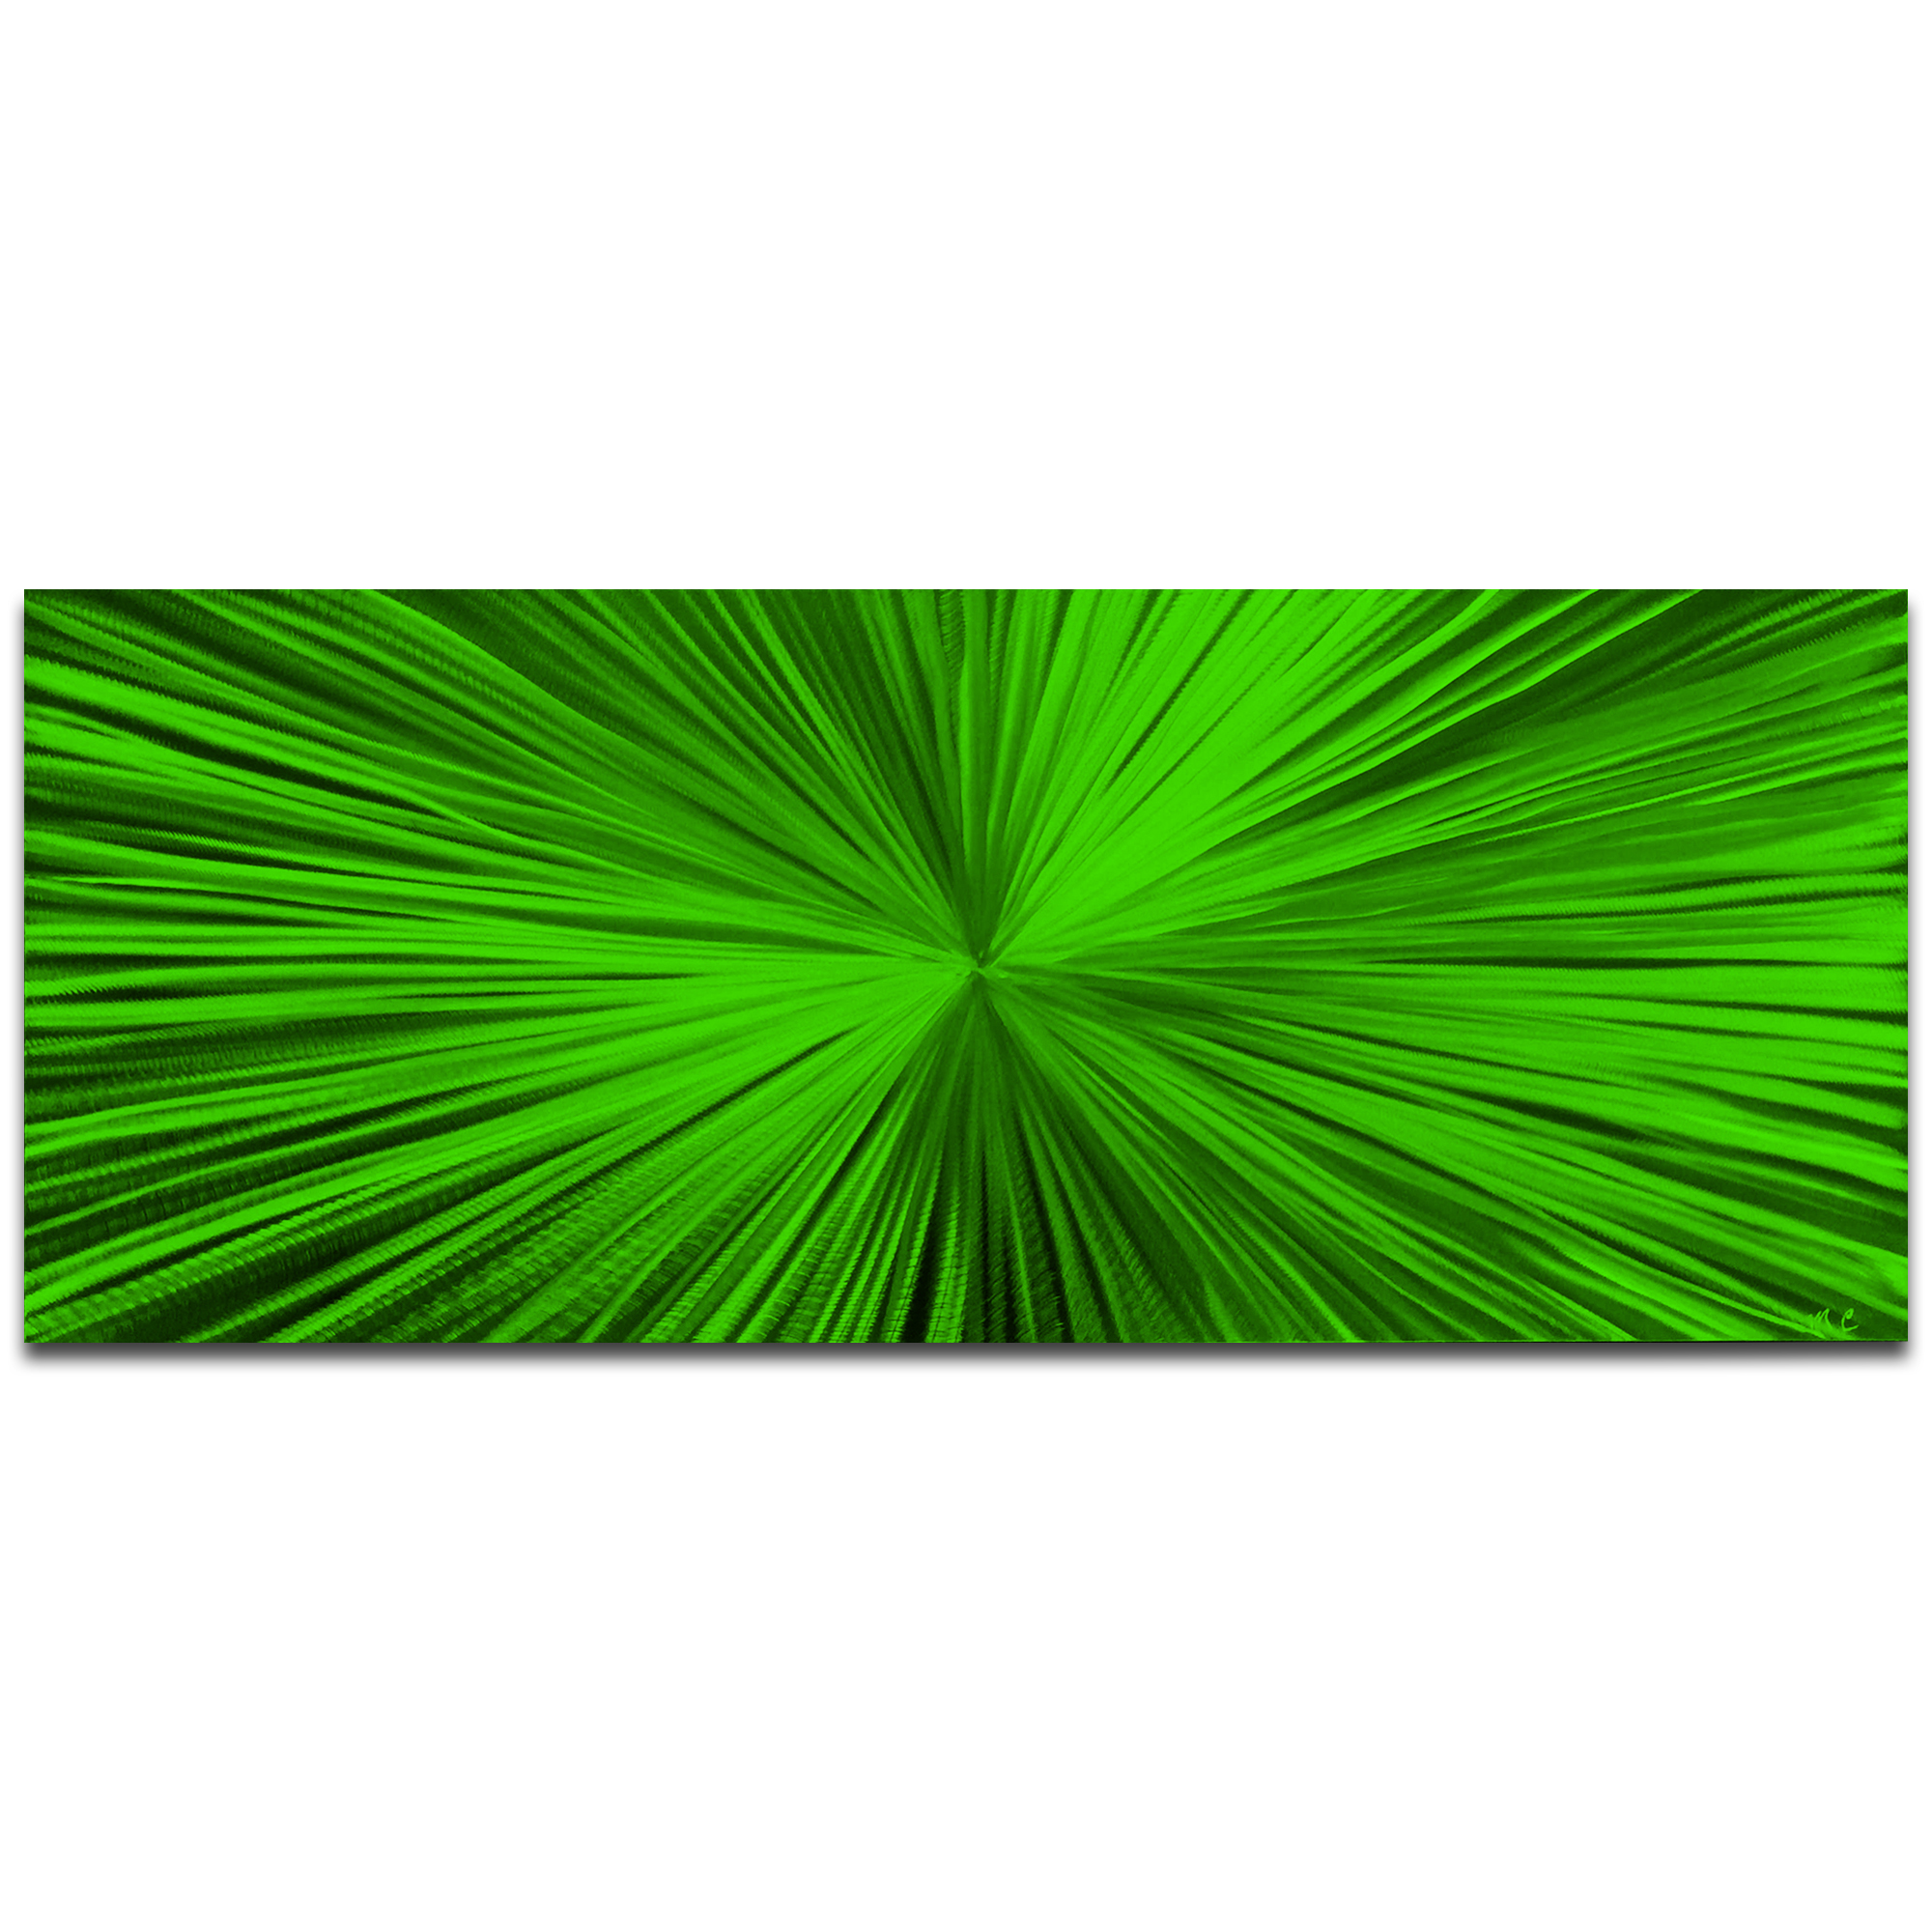 Helena Martin 'Starburst Green' 60in x 24in Original Abstract Art on Ground and Painted Metal